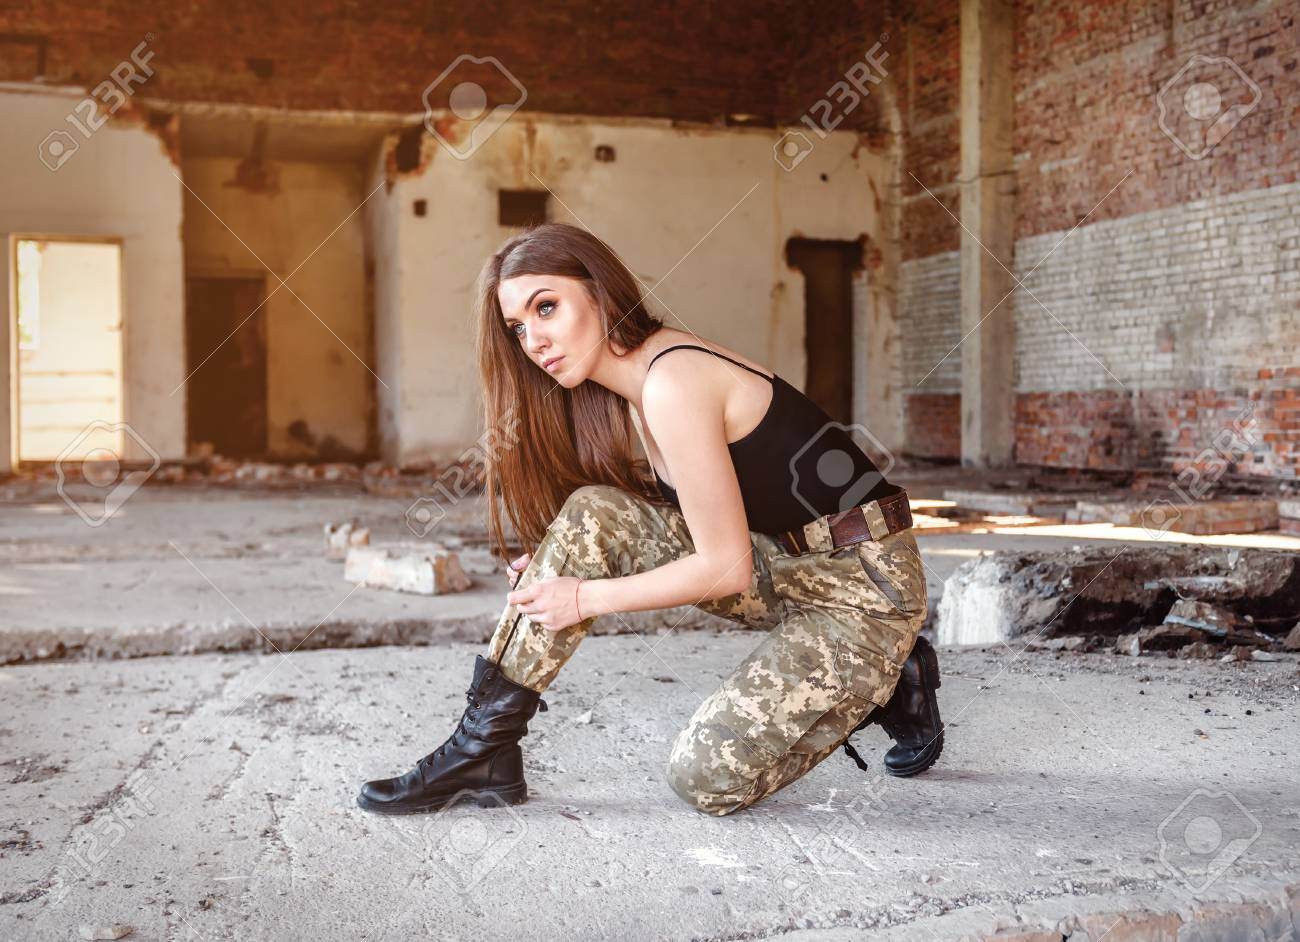 The Young Military Girl Tied Up Black Military Boots Stock Photo ...